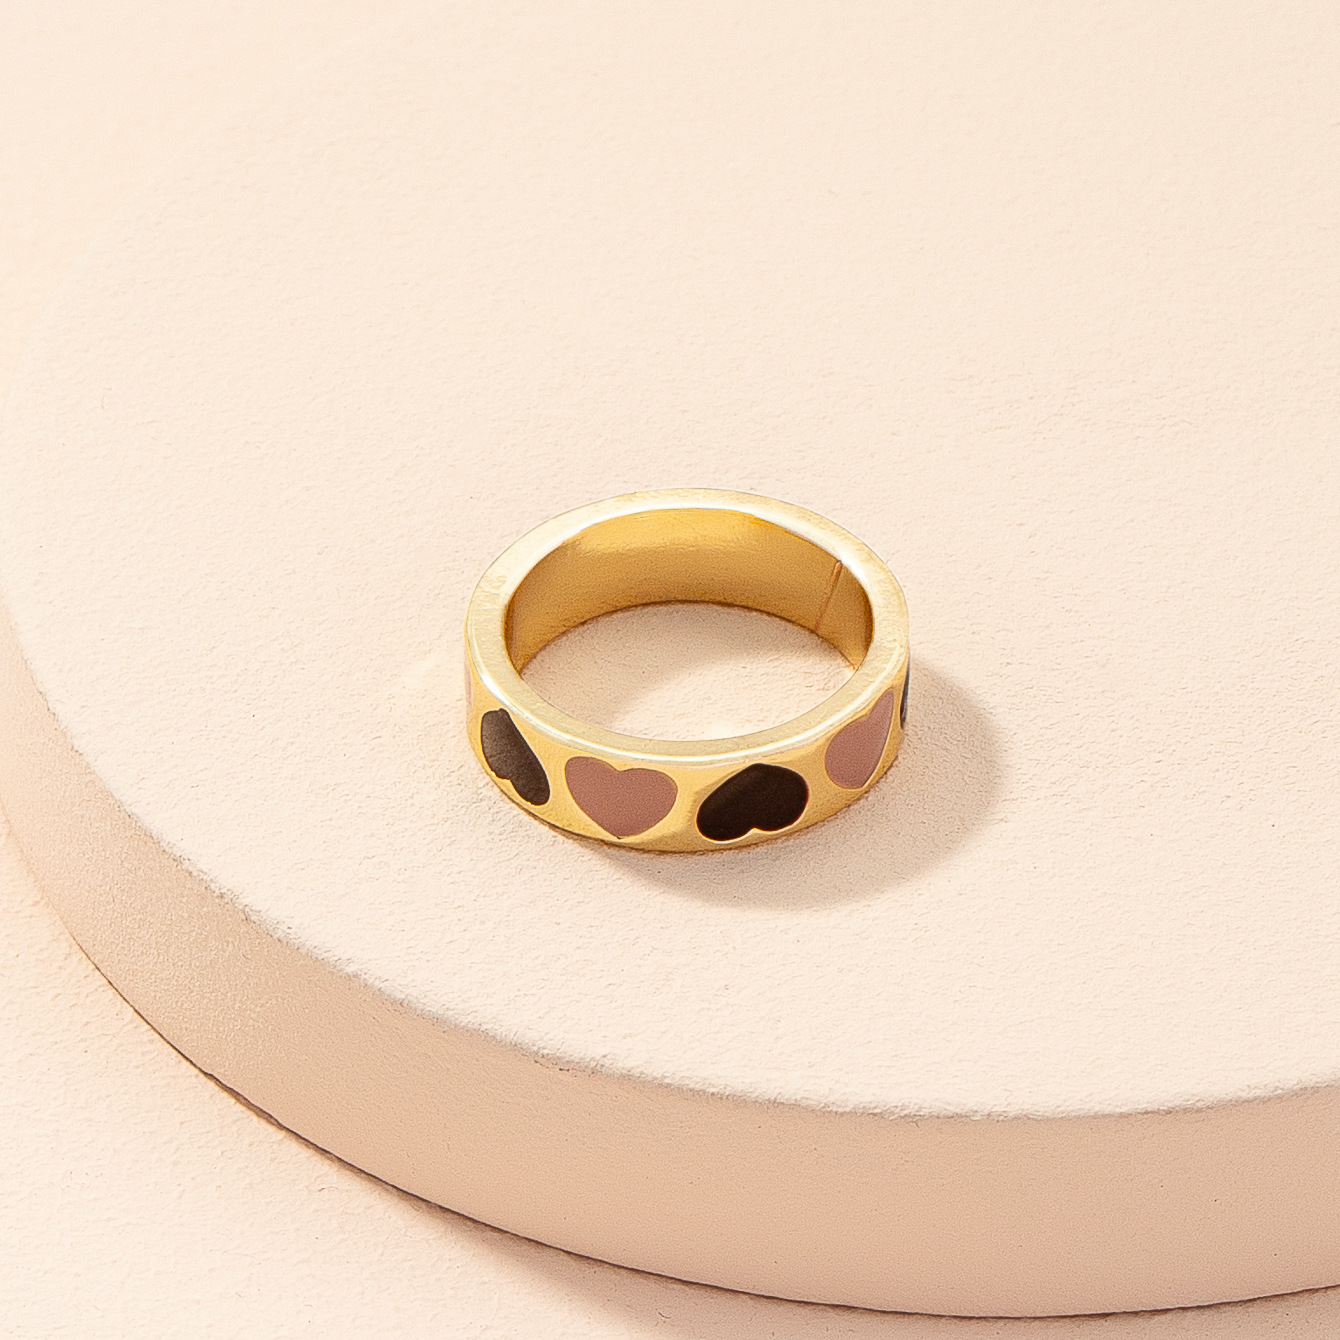 Korean alloy dripping contrast color heart ring wholesale  NHAI368255